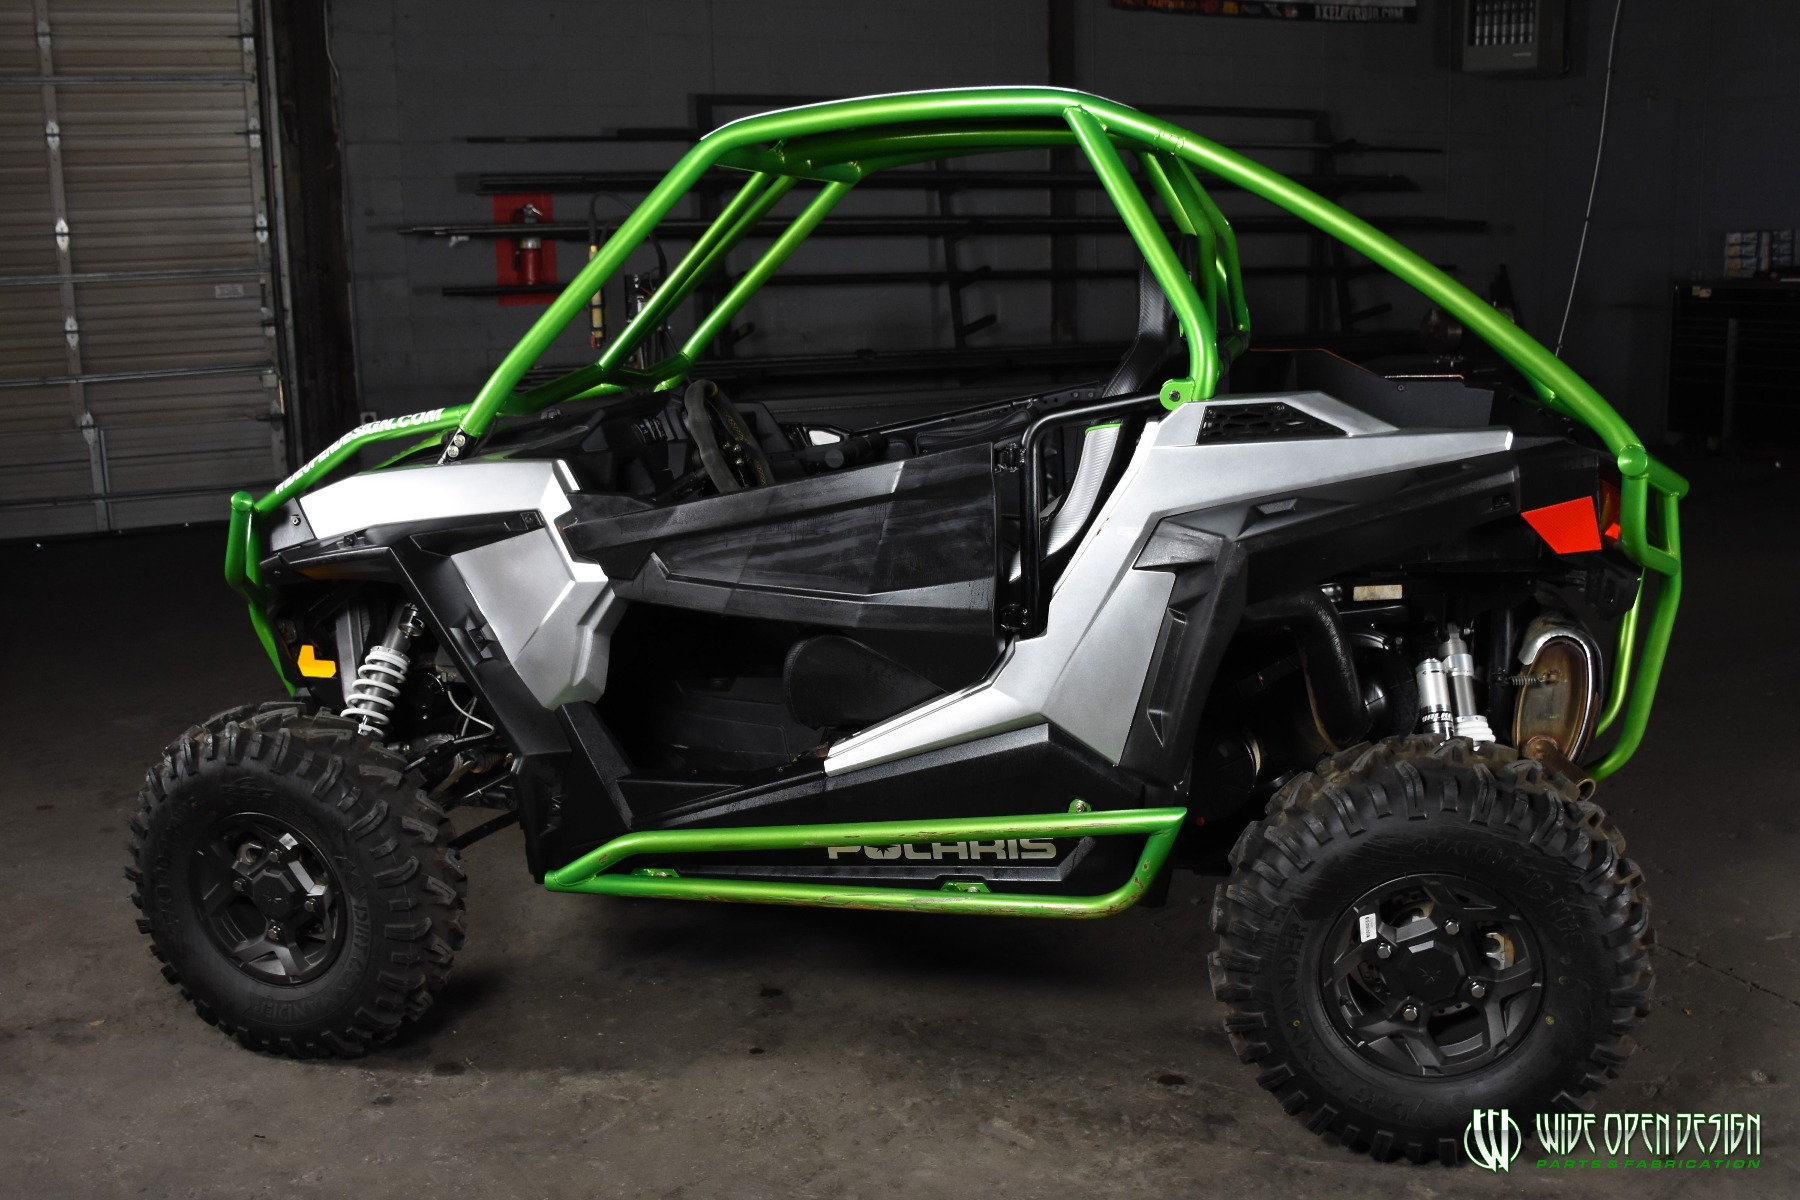 Jason's 1000s RZR with Wide Open Design Rolled Roof Cage, Front Bumper with Tie In, and Rocker Guards 18